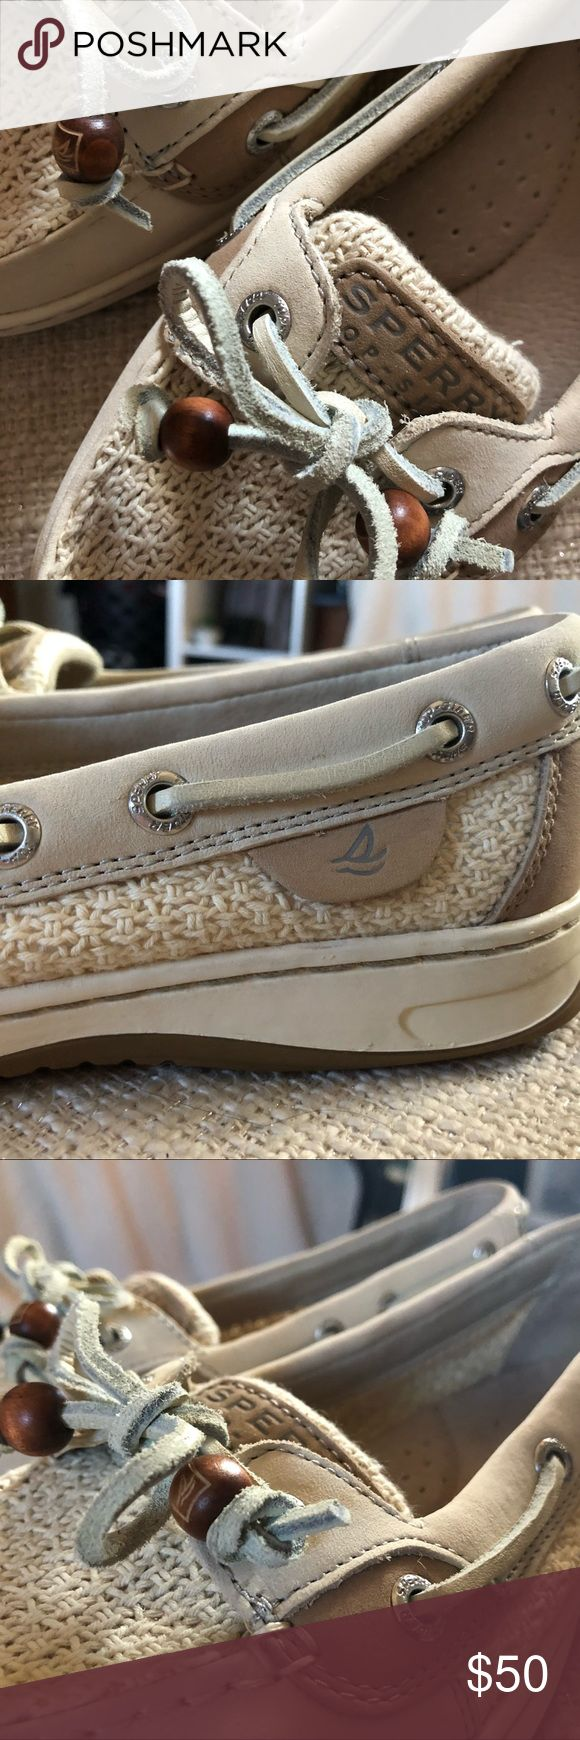 Sperry Crochet boat shoes Unique detailing perfect condition worn once Sperry Shoes